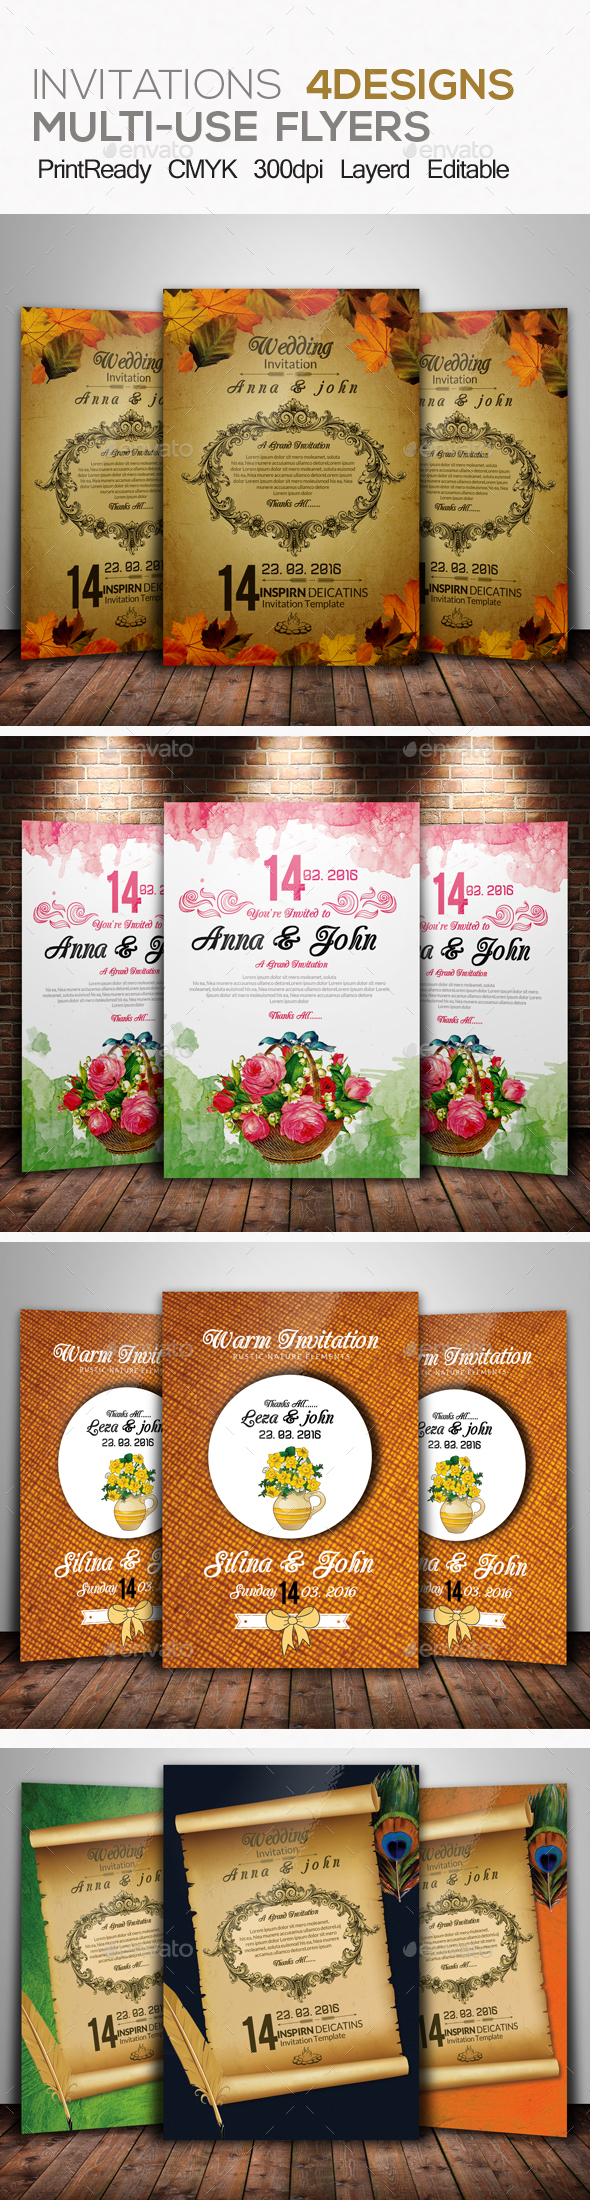 Wedding Invitation & RSVP Bundle